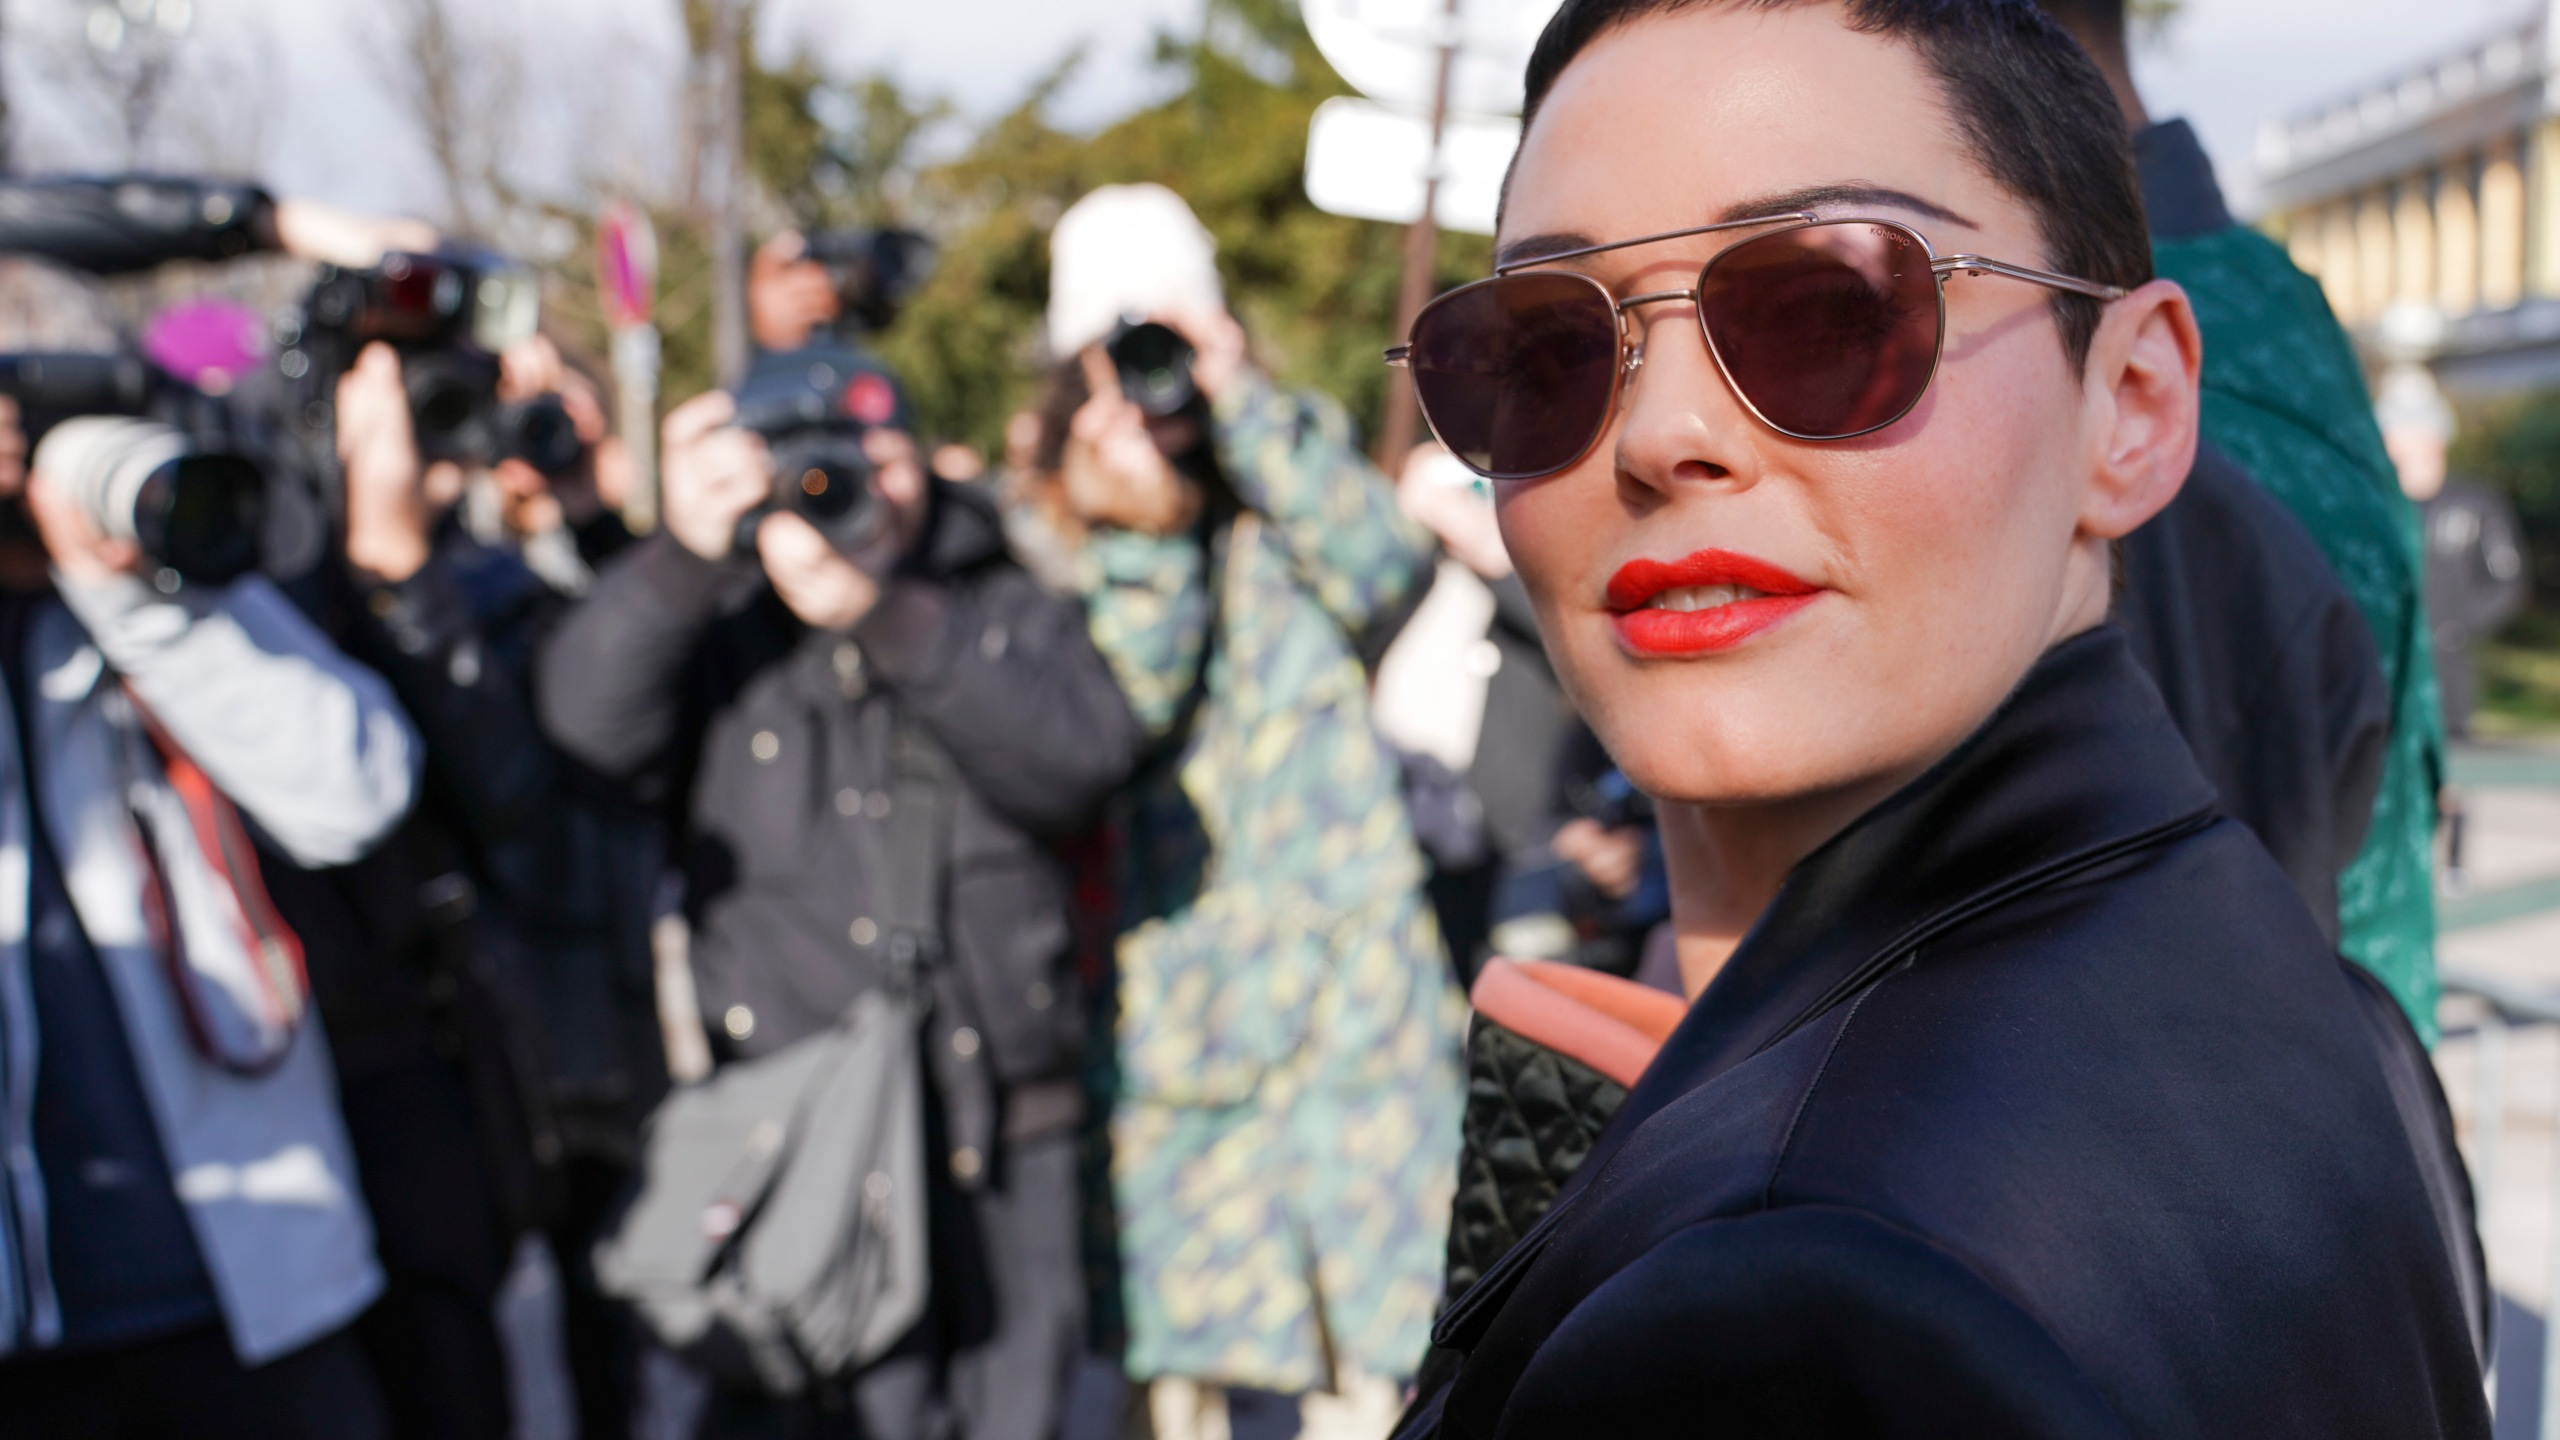 Rose McGowan attends the Vivienne Westwood show as part of the Paris Fashion Week Womenswear Fall/Winter 2018/2019 on March 3, 2018, in Paris, France. (Credit: Getty Images)